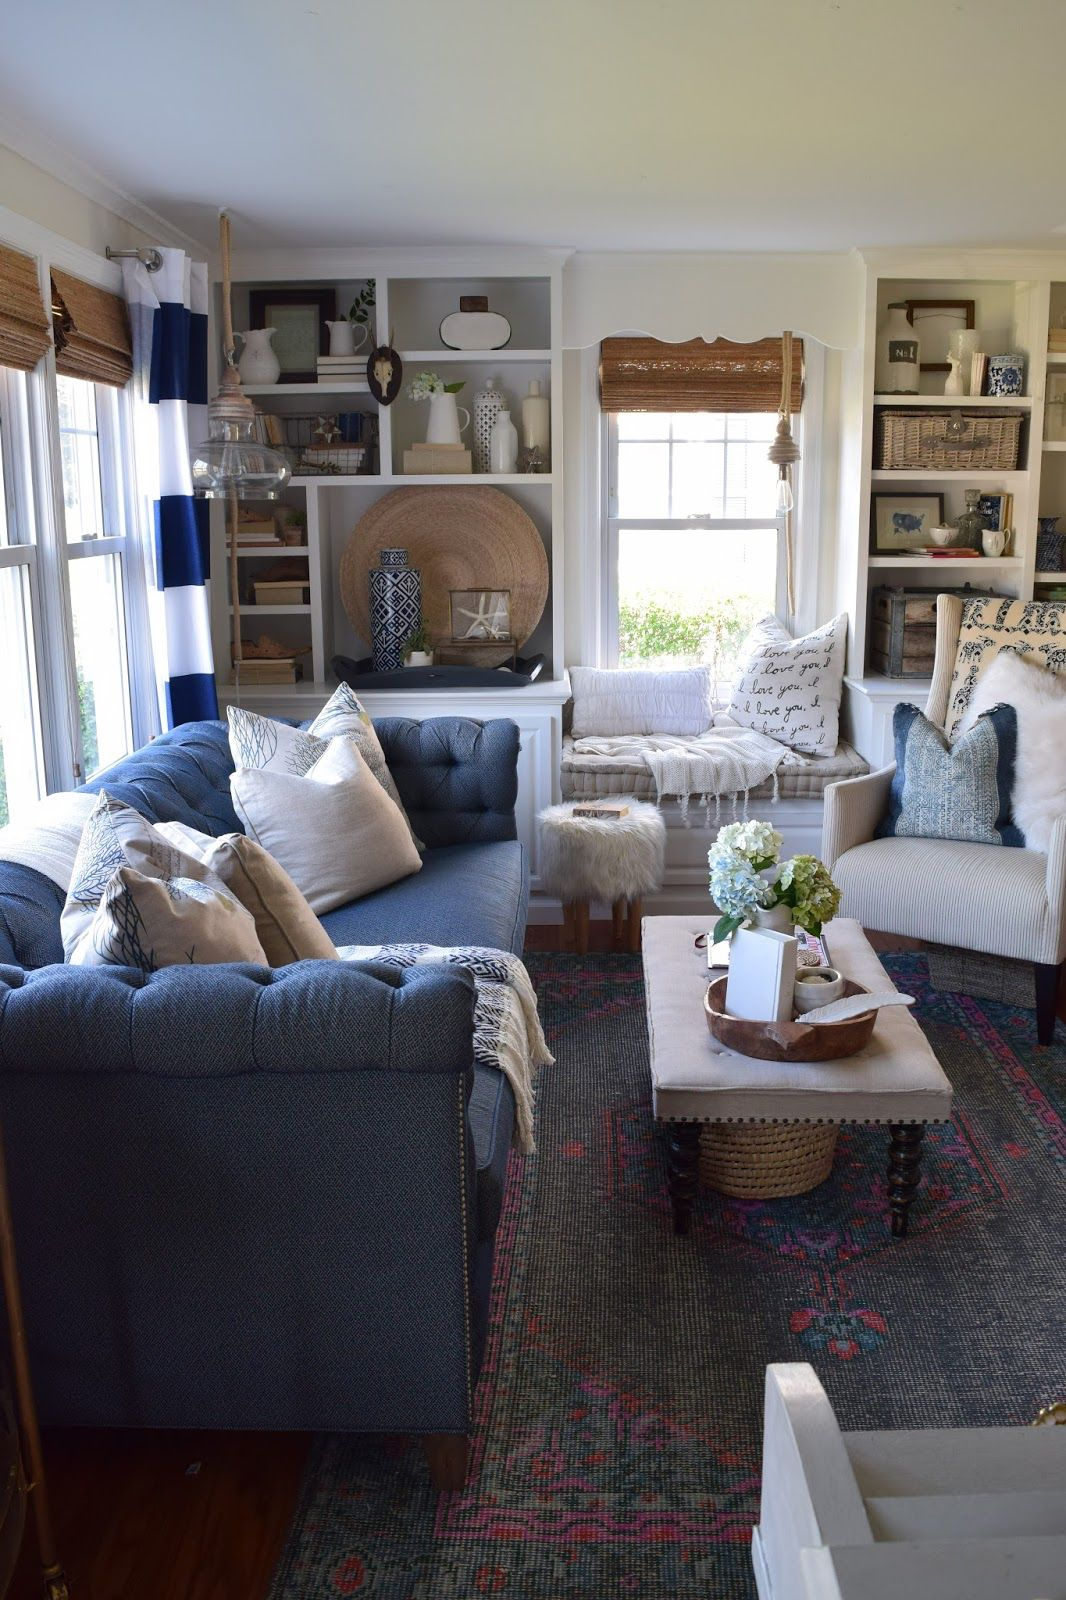 Pin By Michelle Hawkins On Color Inspiration Blue Couch Living Farm House Living Room Blue Living Room